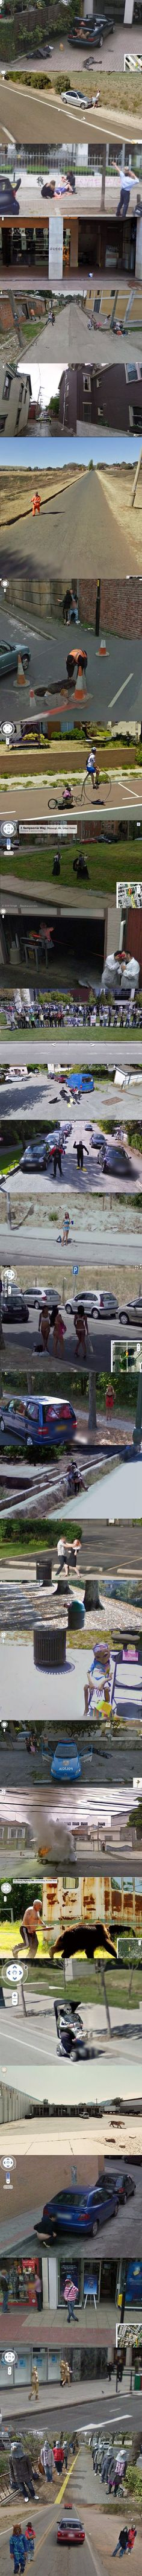 Weird Stuff on Google Street View